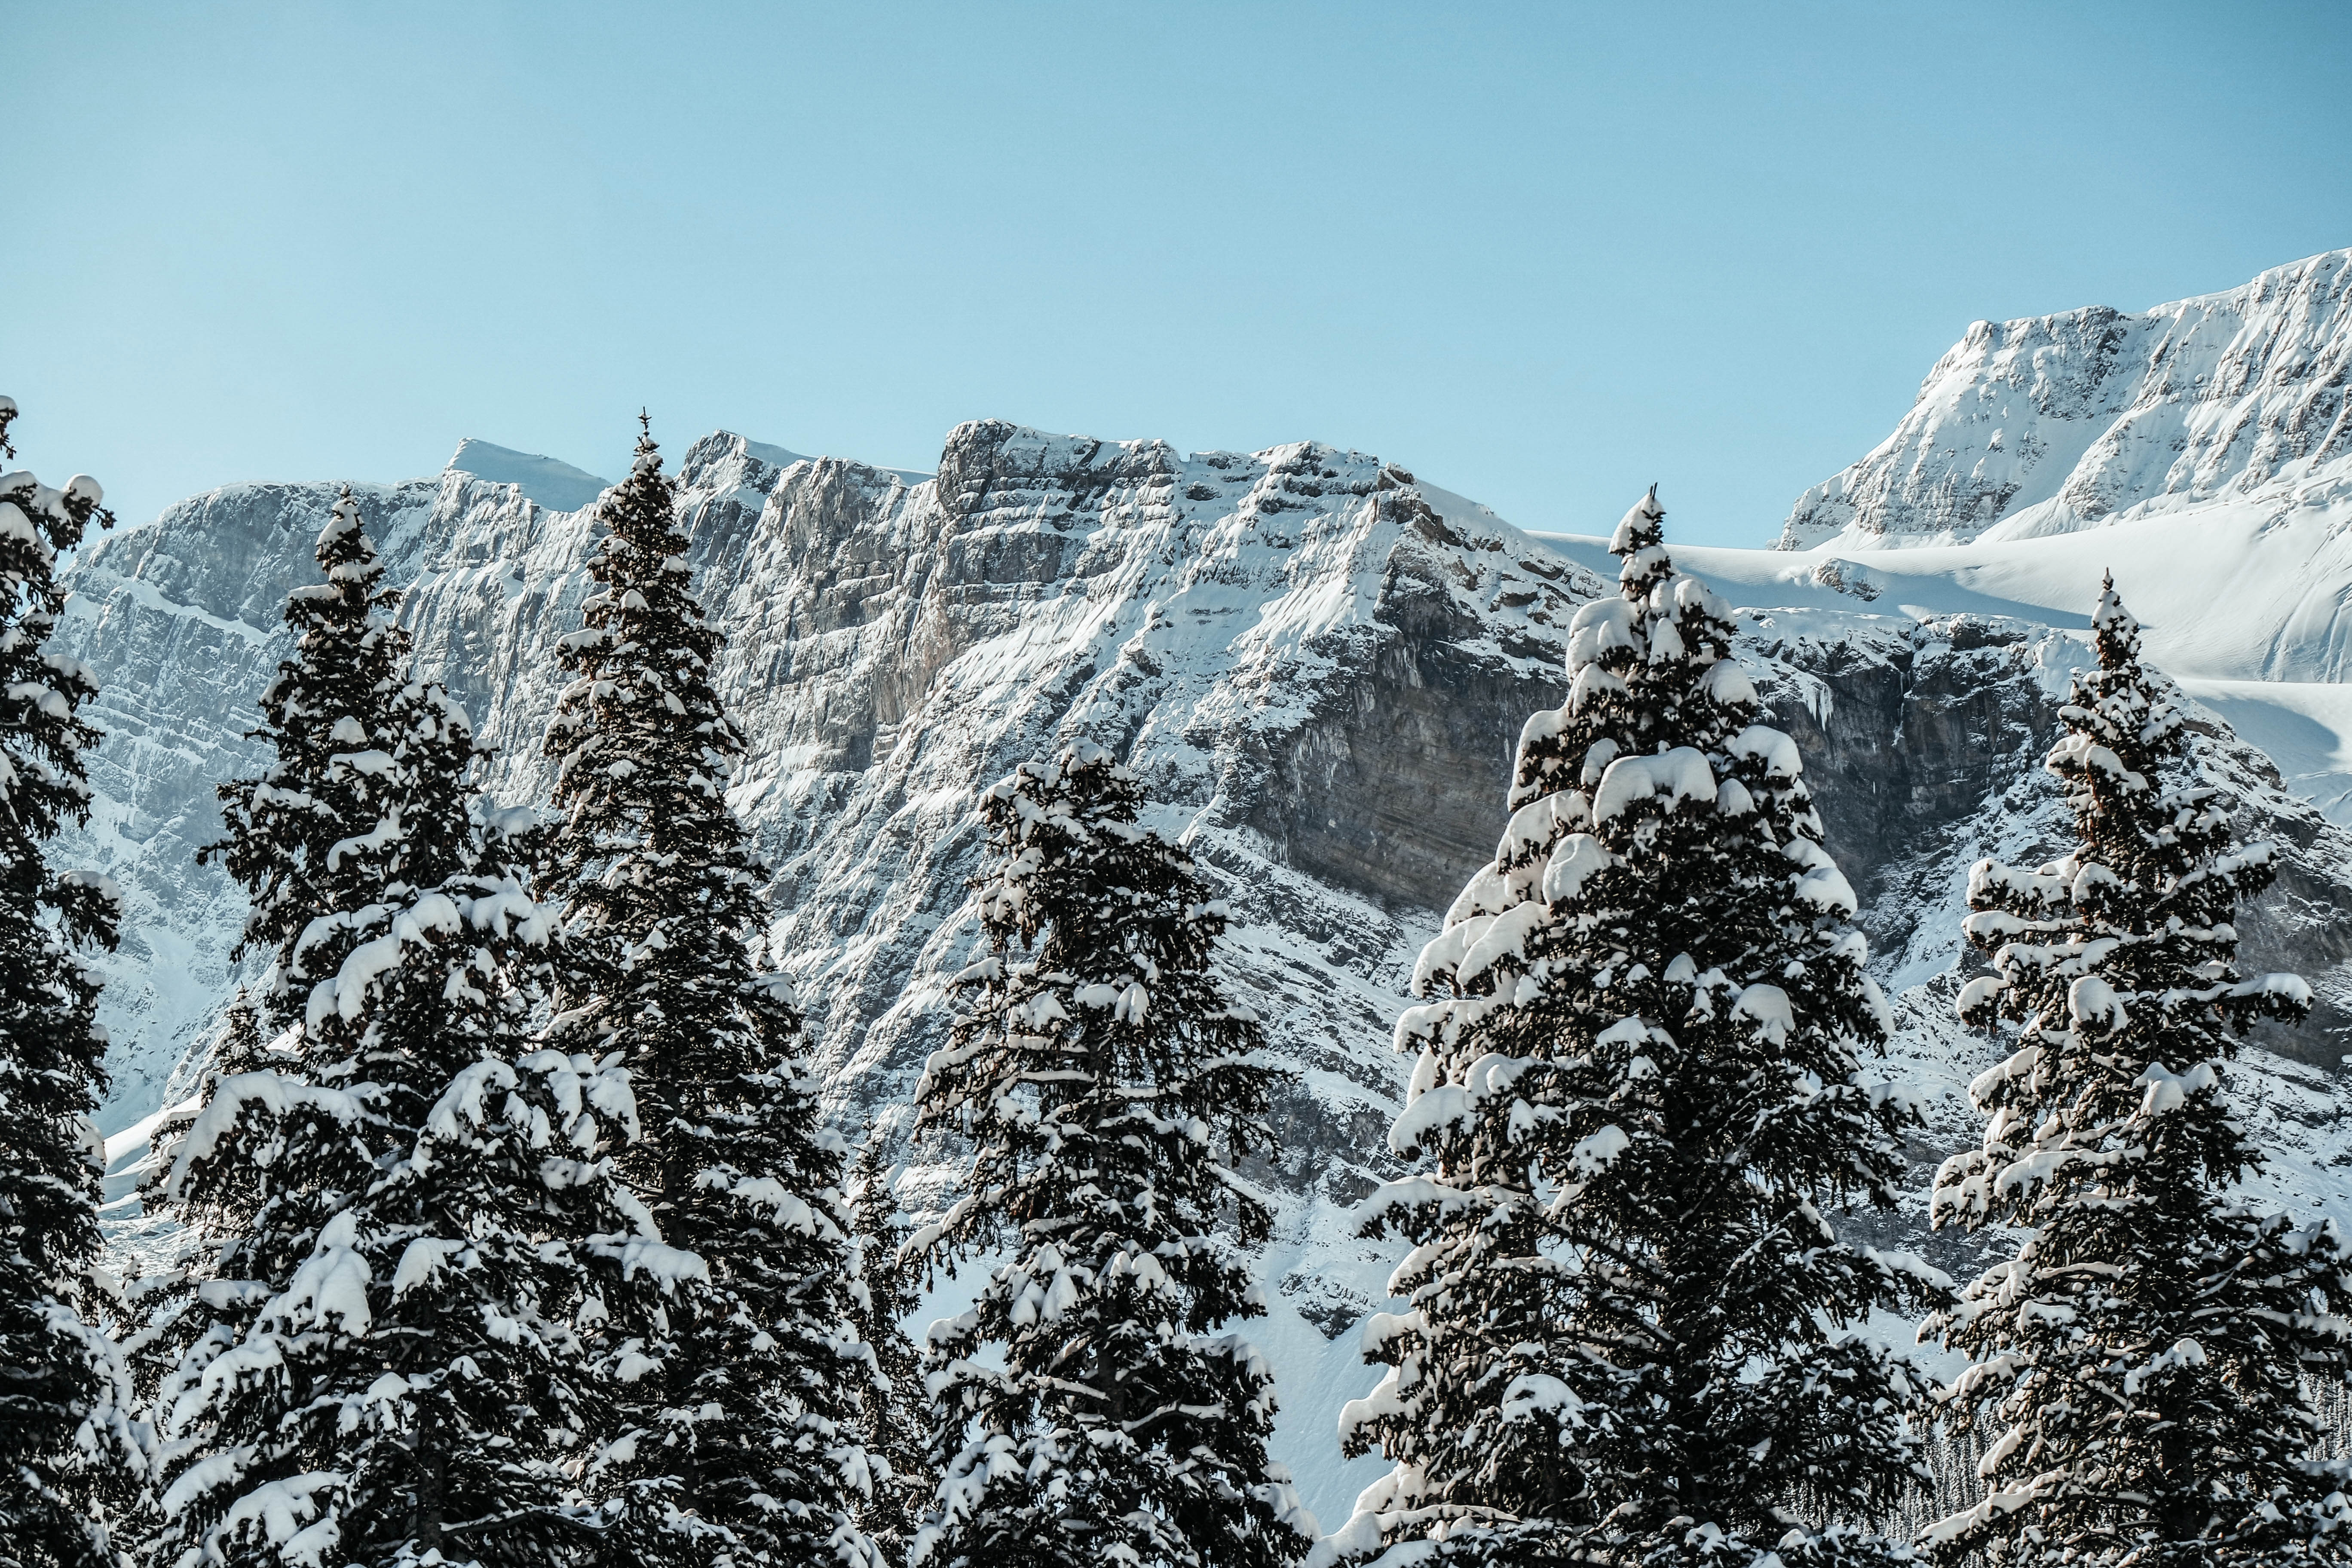 Snowy Mountain Tops, Icefield parkway